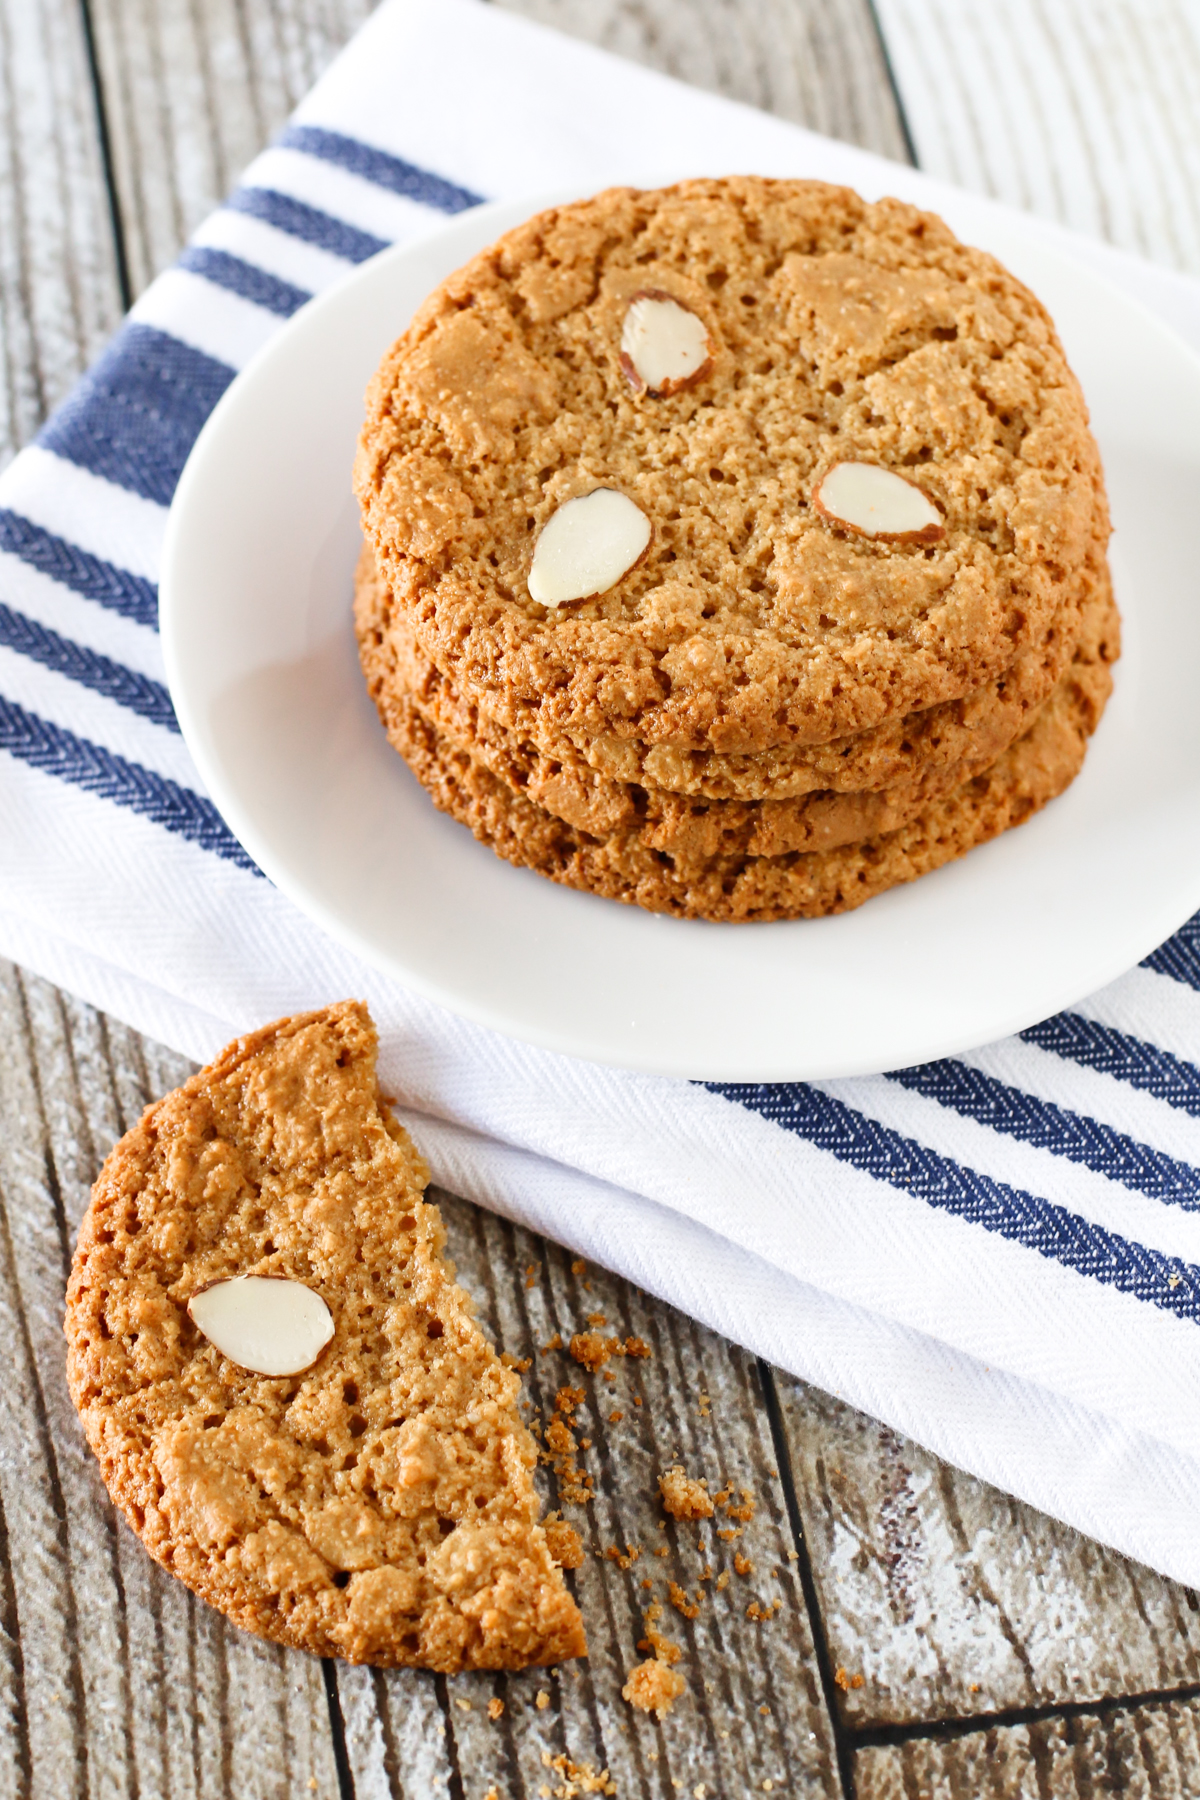 Gluten Free Vegan Almond Cookies. These almond flour cookies have the perfect chewy, crispy texture.